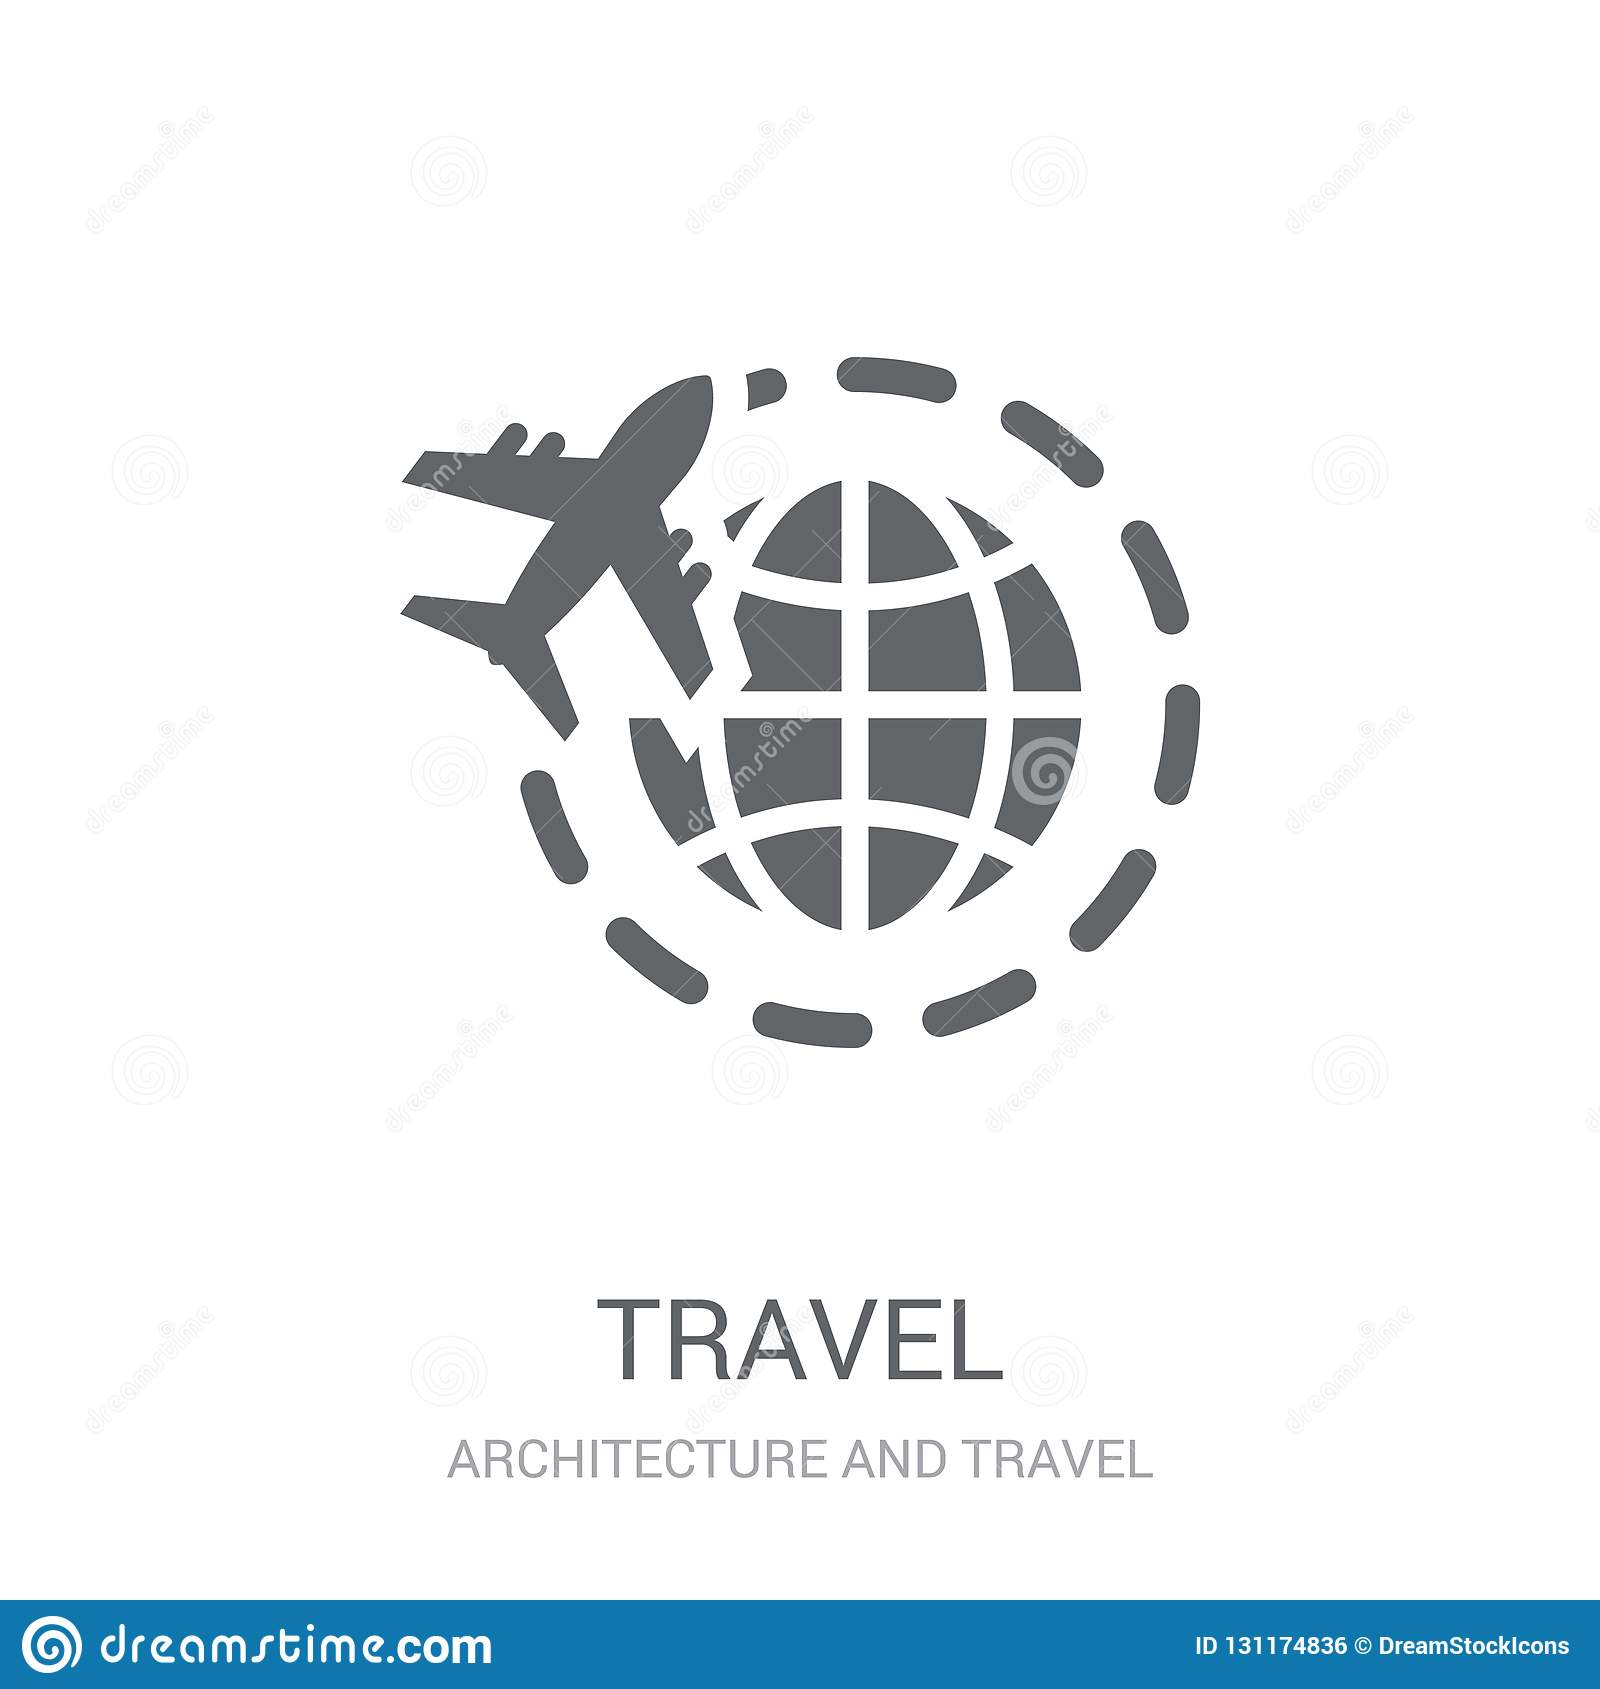 Travel icon. Trendy Travel logo concept on white background from